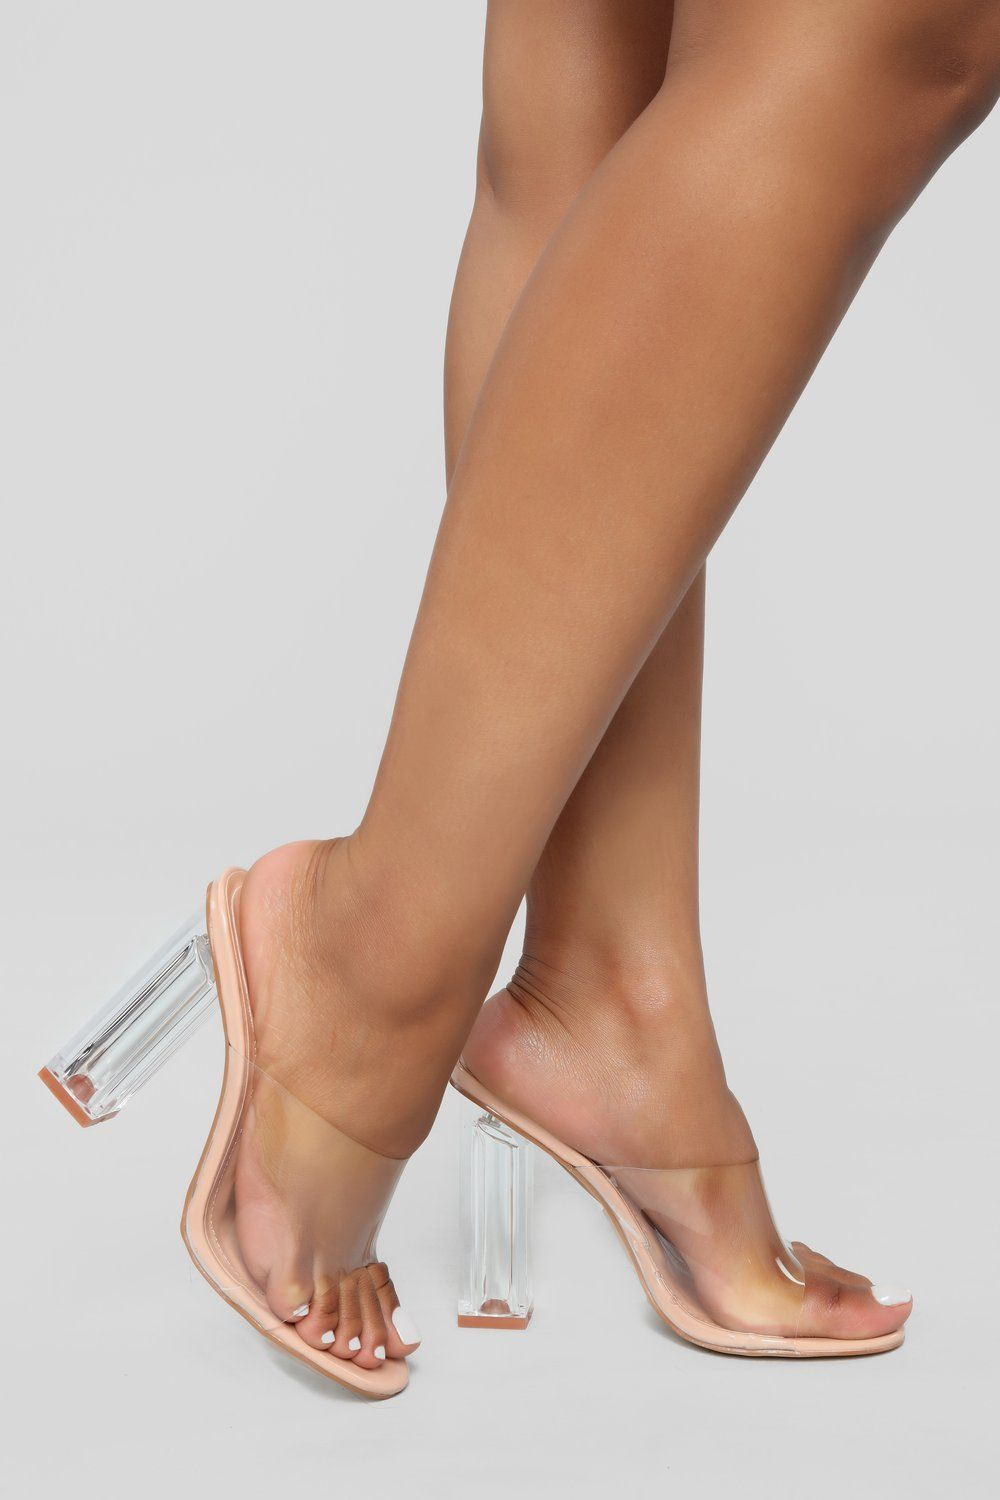 331448b69d961 Raise A Glass Heel - Nude in 2019 | mules | Glass heels, Heels ...